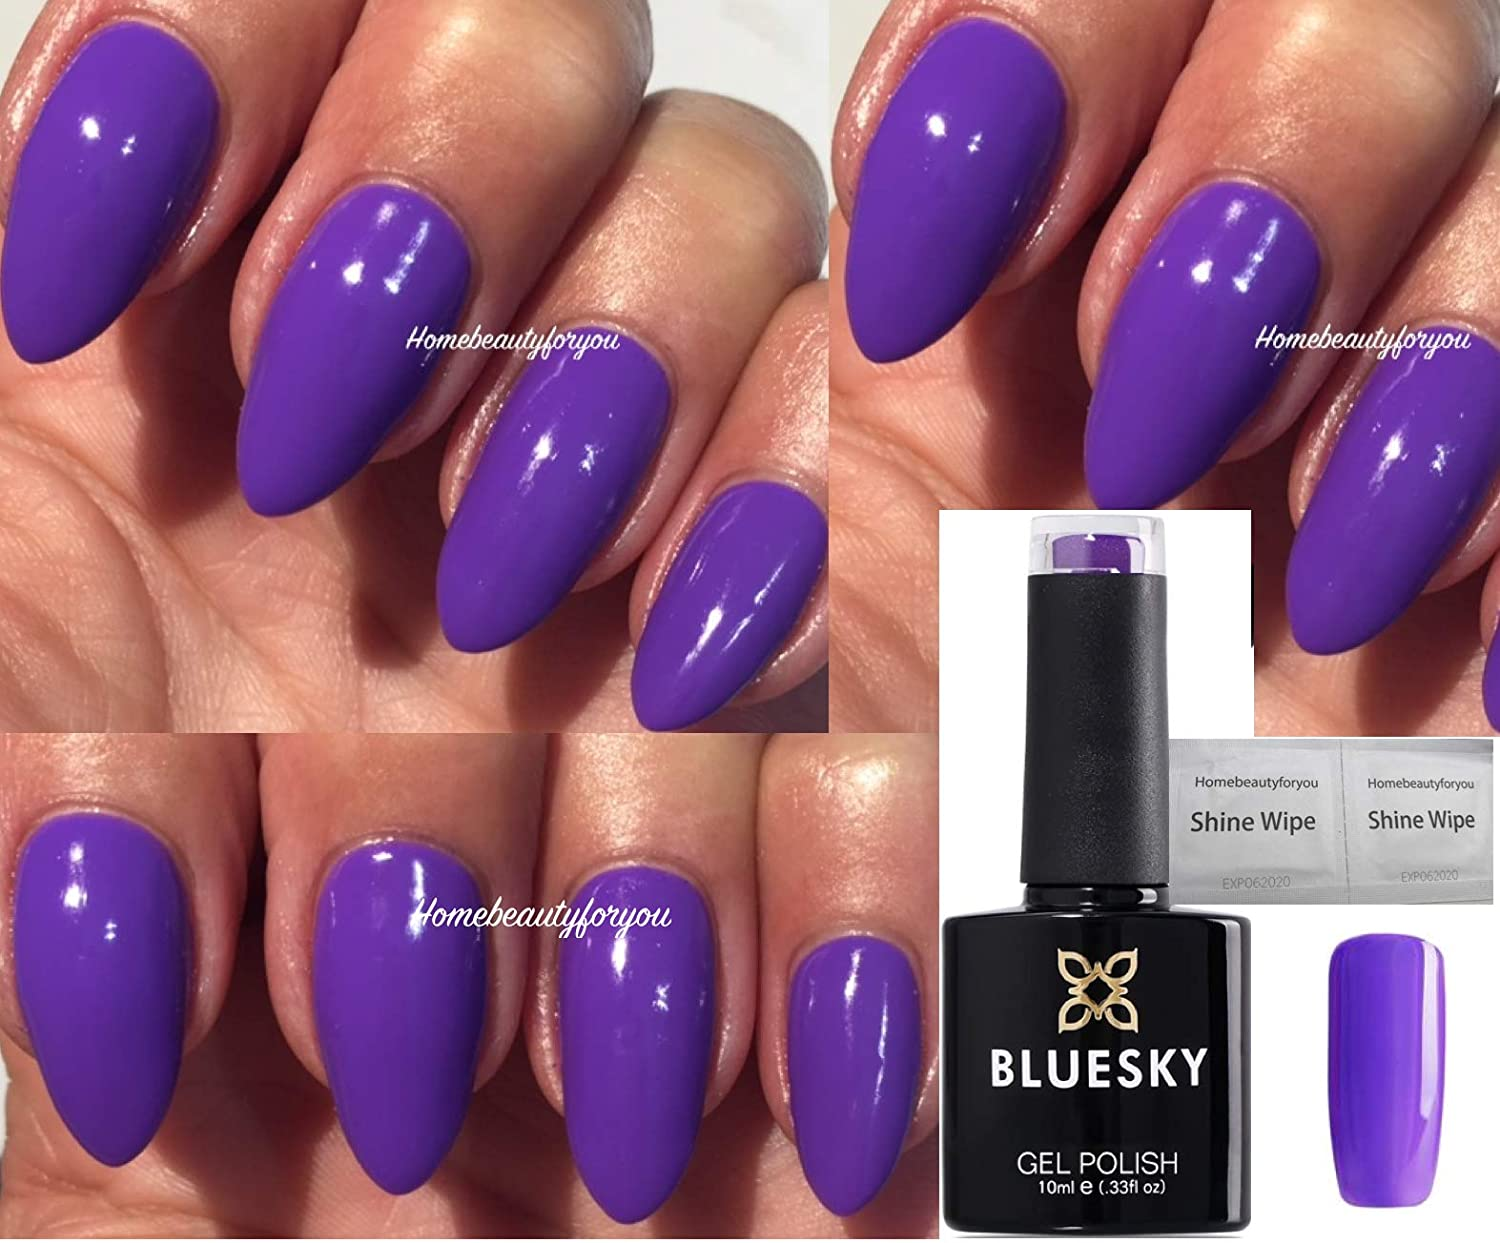 Bluesky 80641 Video Violet Bright Purple New Wave Nail Gel Polish UV LED Soak Off 10ml PLUS 2 Luvlinail Shine Wipes LTD